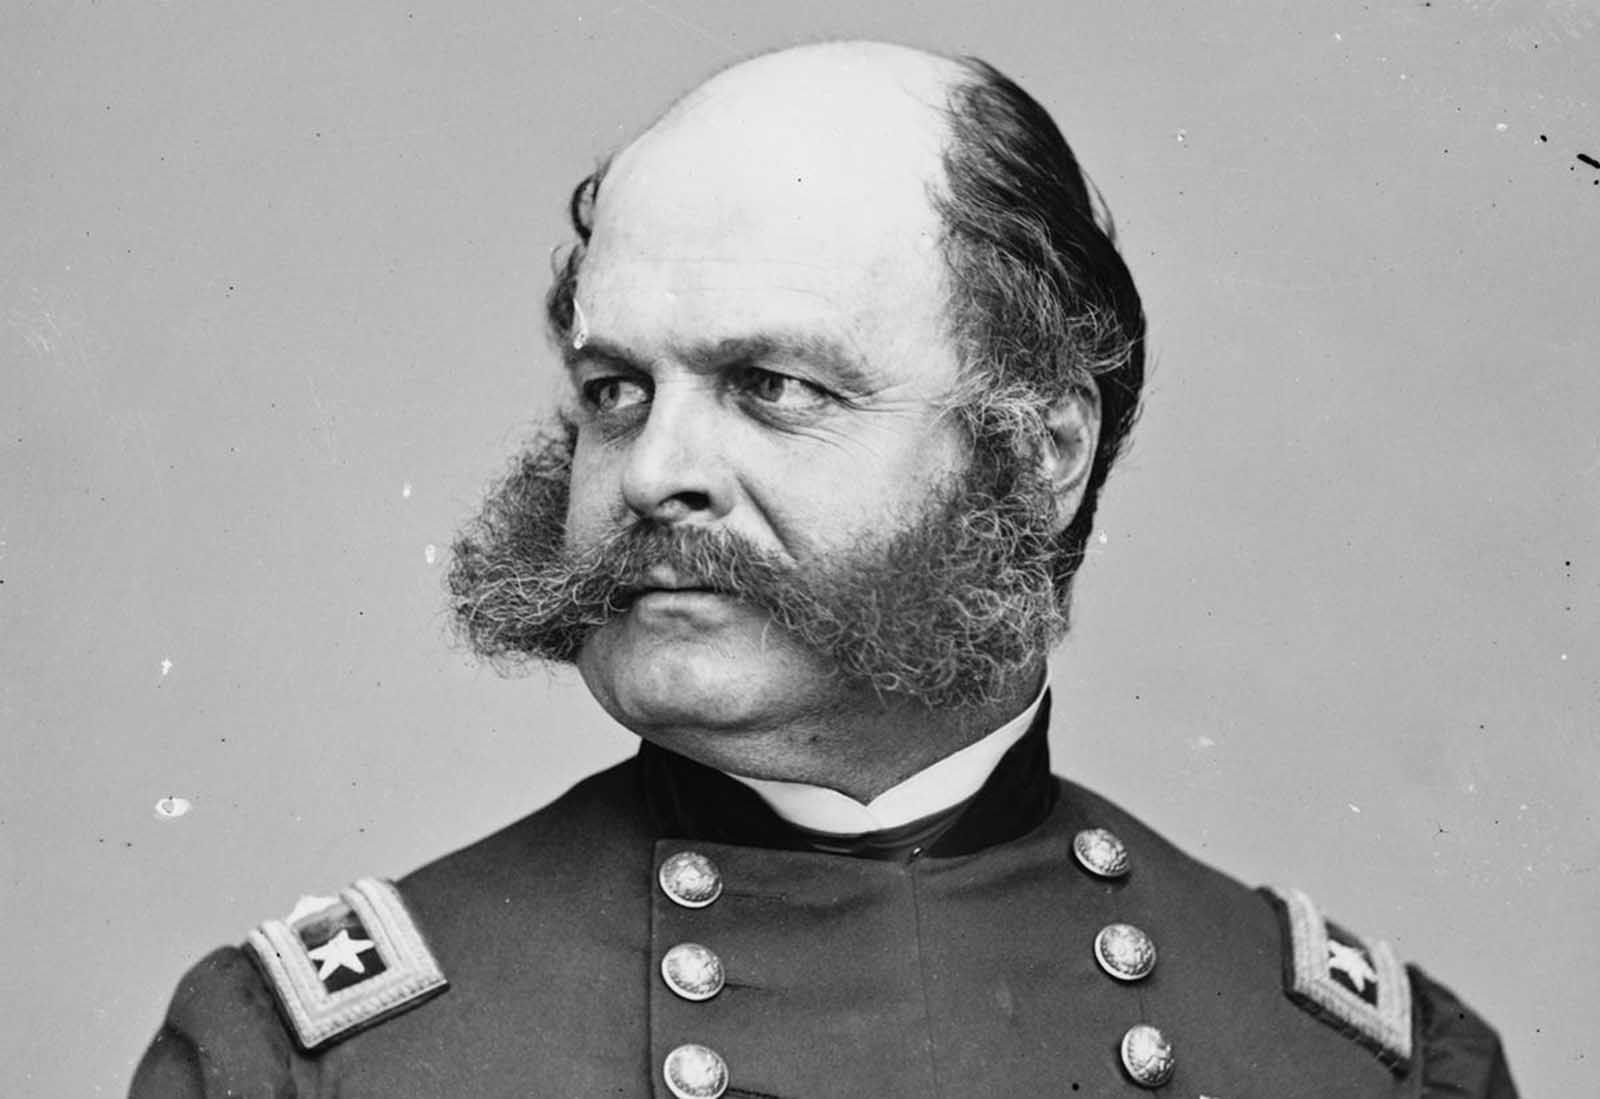 Union Major General Ambrose E. Burnside, conducted campaigns in North Carolina and Tennessee during the war. Afterwards he served as the Governor, and later as U.S. Senator from Rhode Island. His distinctive style of facial hair is now known as sideburns, derived from his last name.